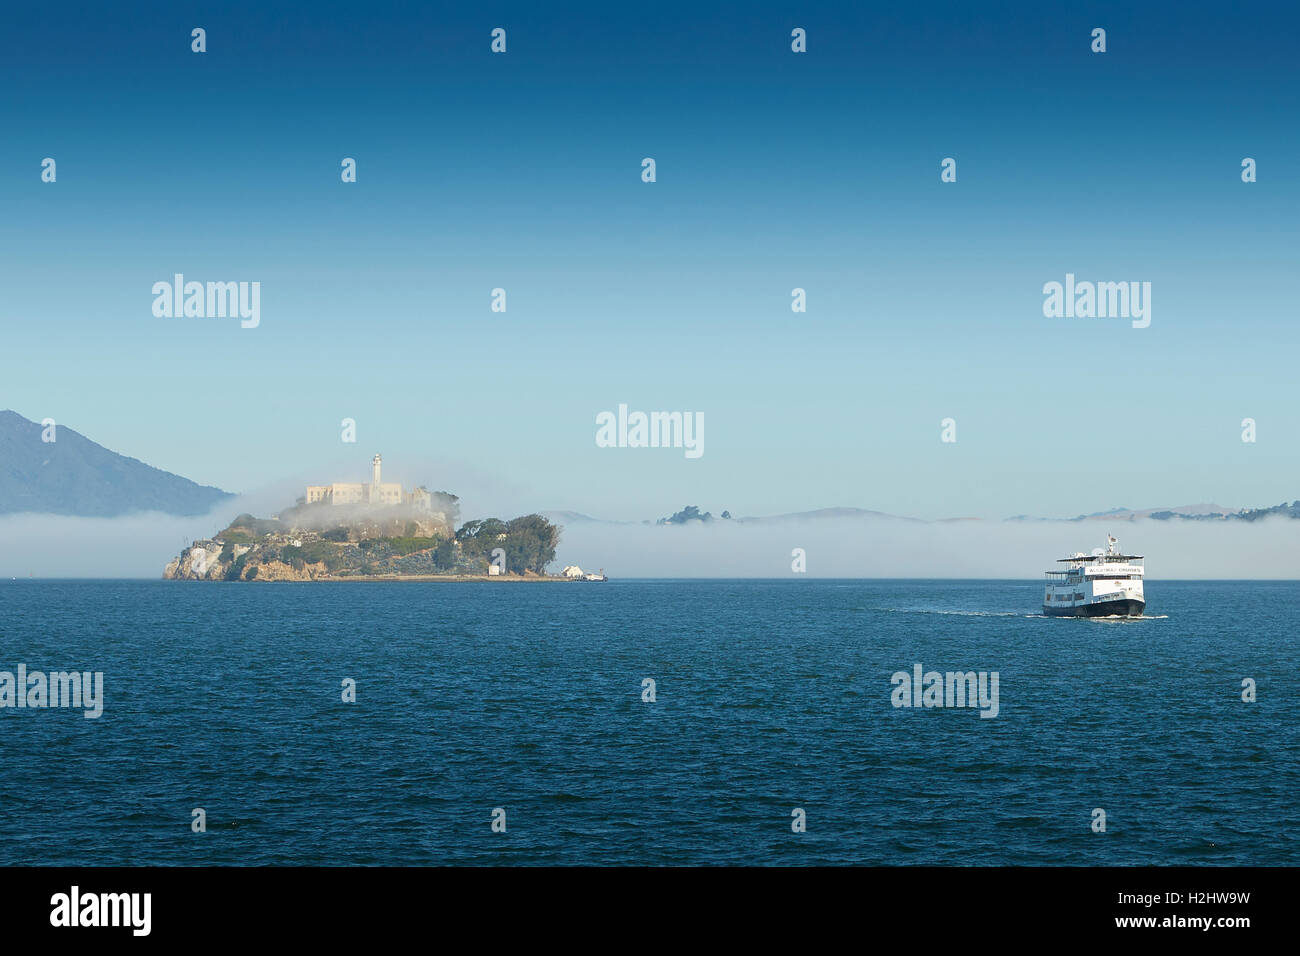 Early Morning Image Of Alcatraz, Sea Fog Rolling Over The Island. - Stock Image